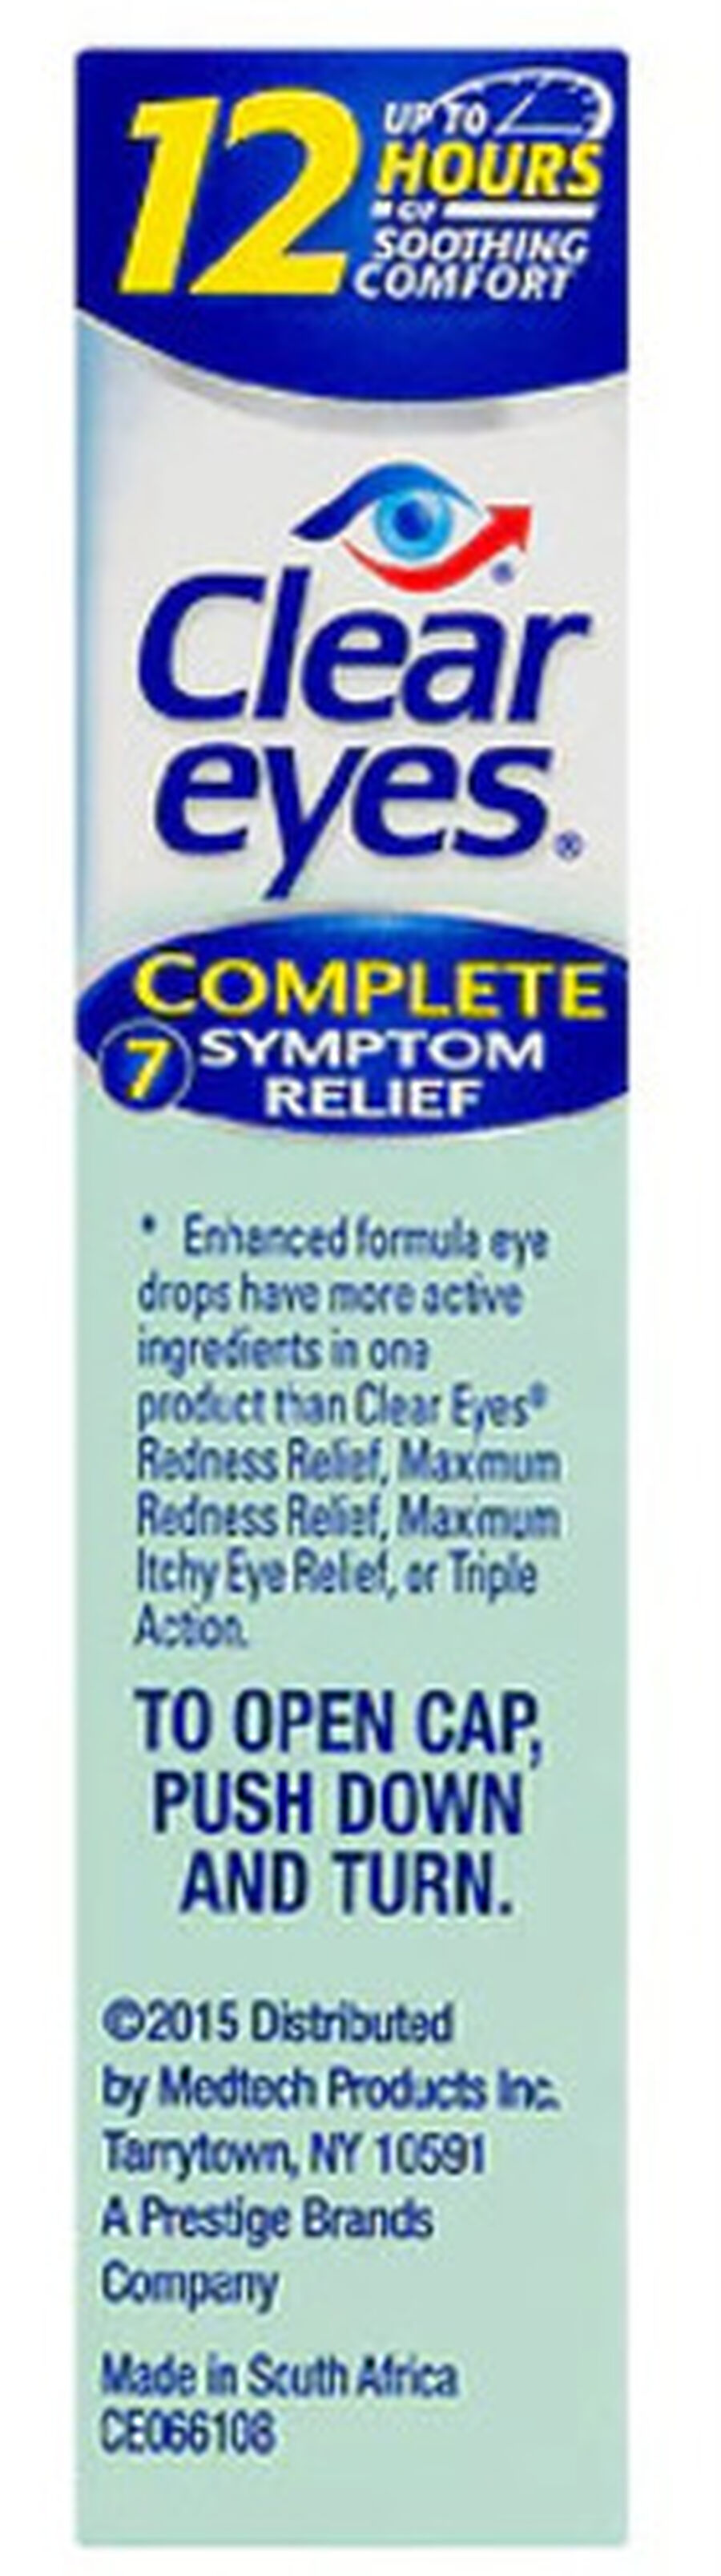 Clear Eyes Complete 7 Symptom Relief Drops, .5 oz, , large image number 2